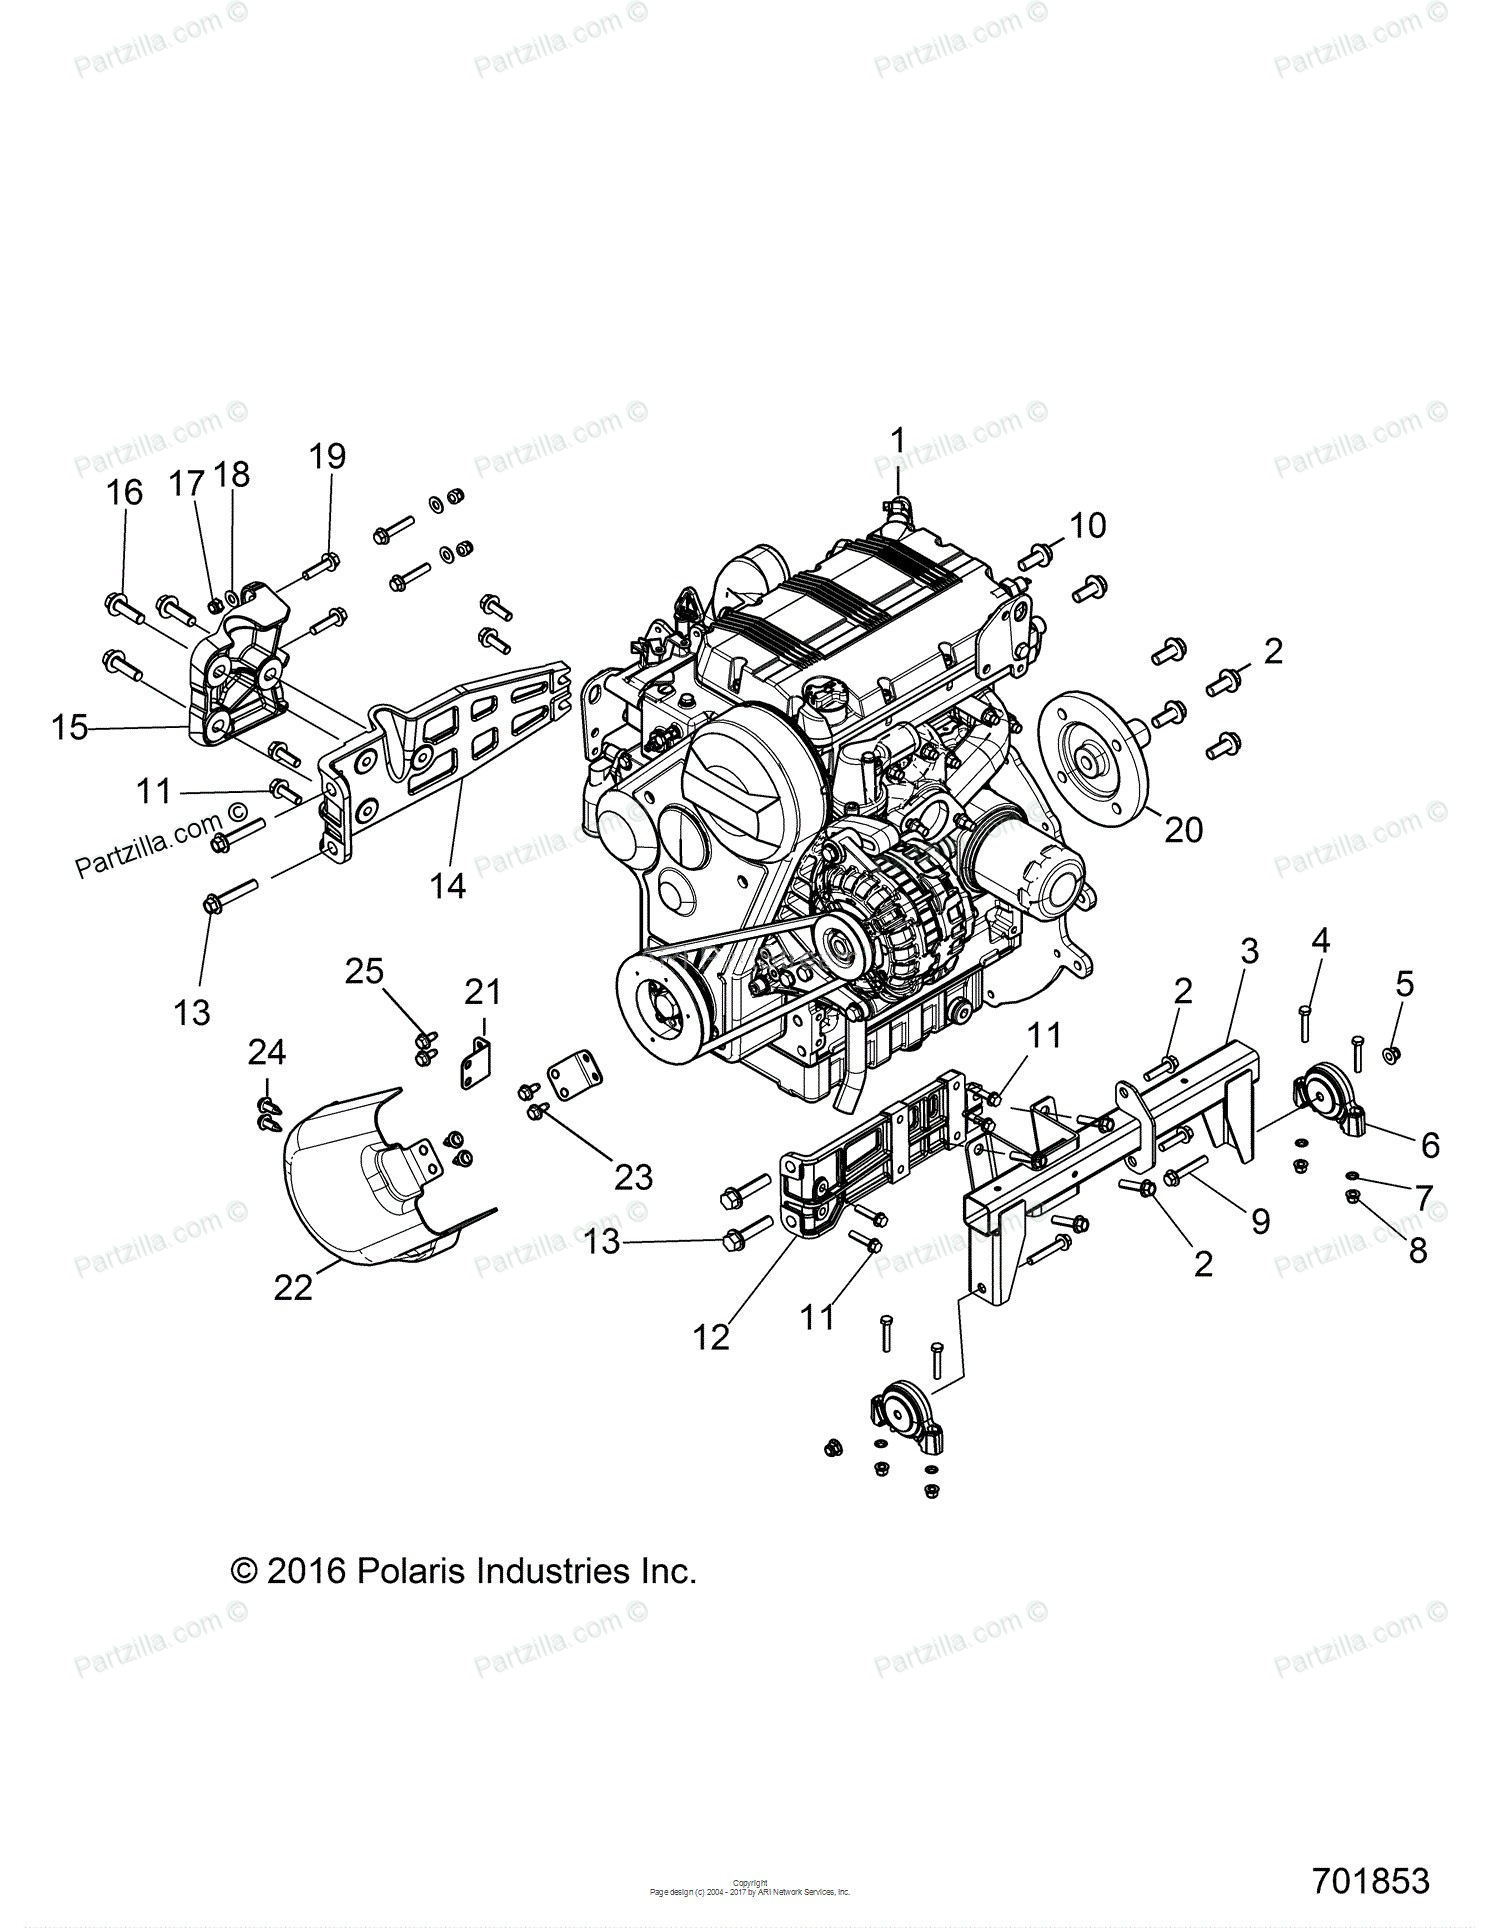 Diesel Engine Parts Diagram Polaris Side by Side 2017 Oem Parts Diagram for Engine Mounting Of Diesel Engine Parts Diagram